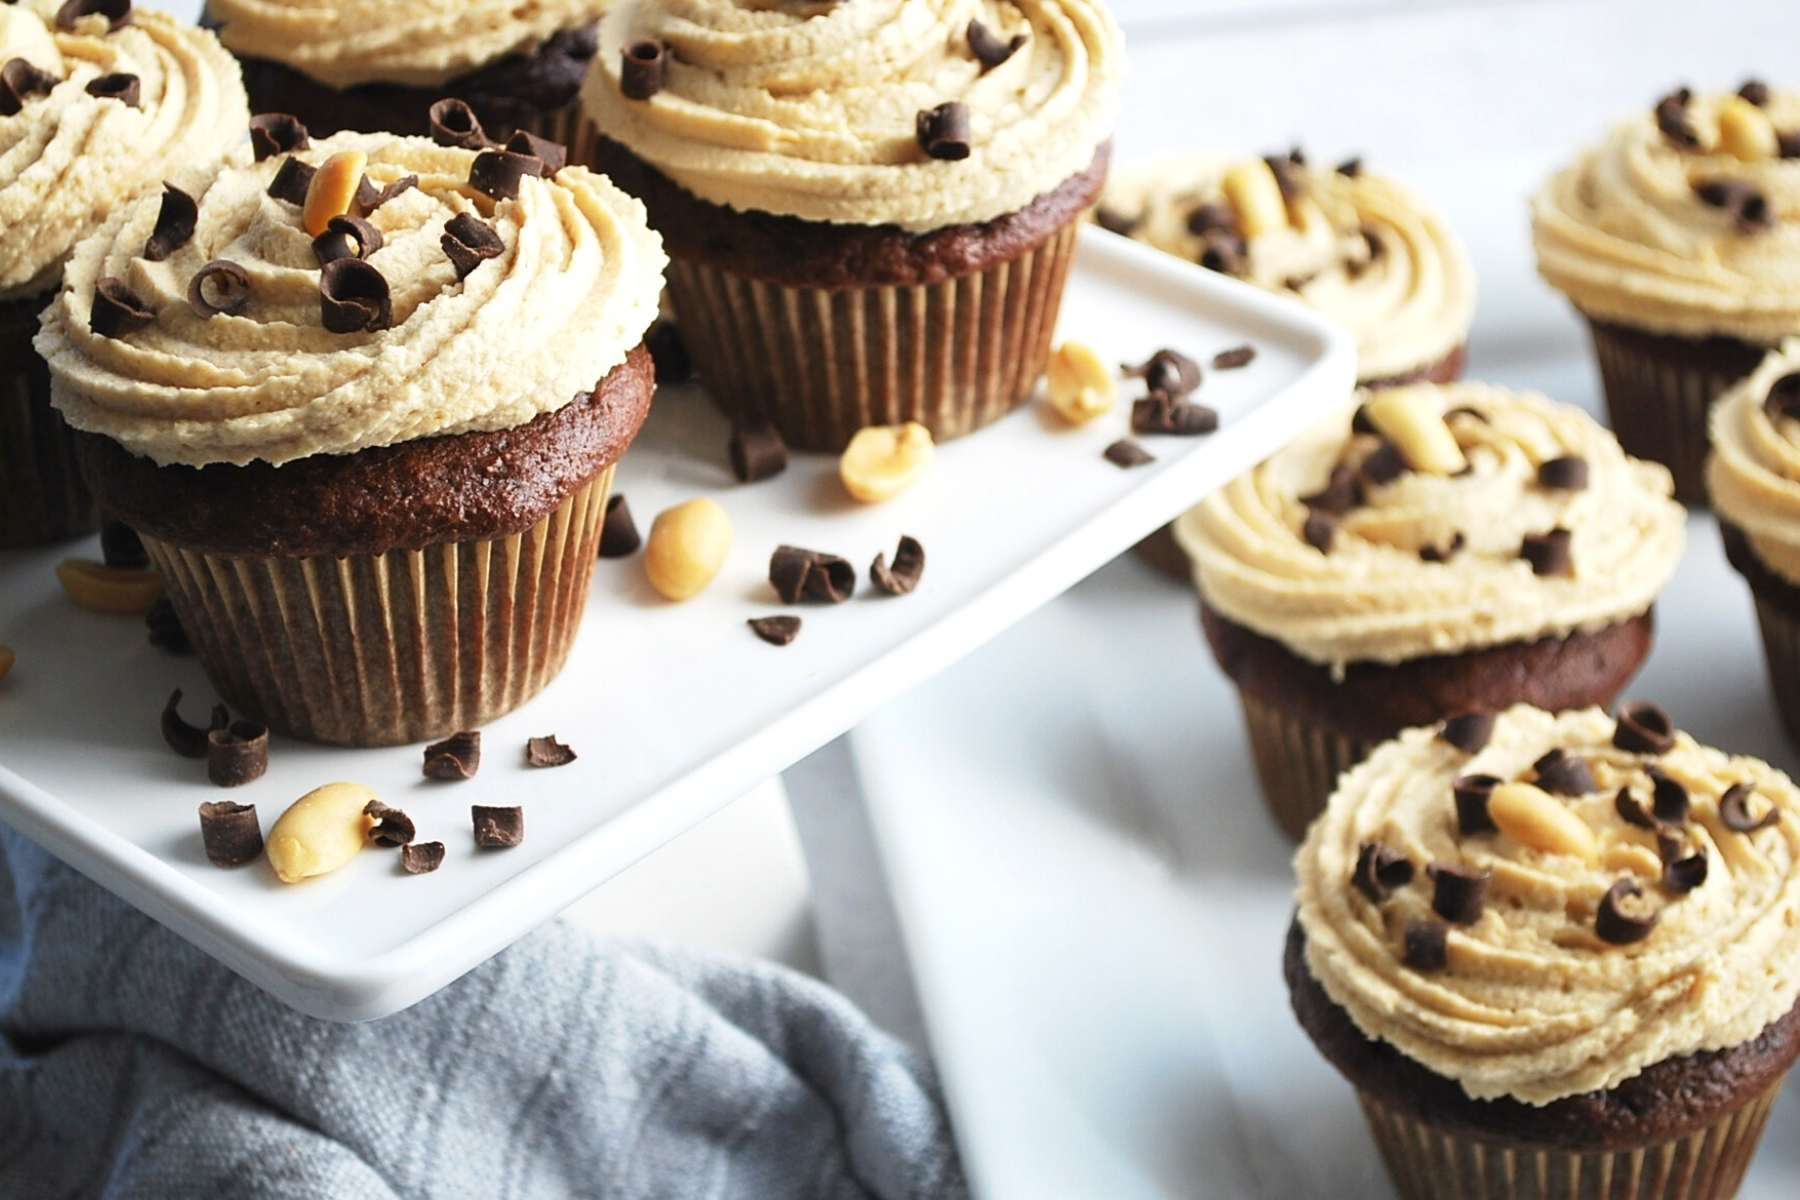 side view of a chocolate cupcakes with peanut butter cream cheese frosting swirled on top